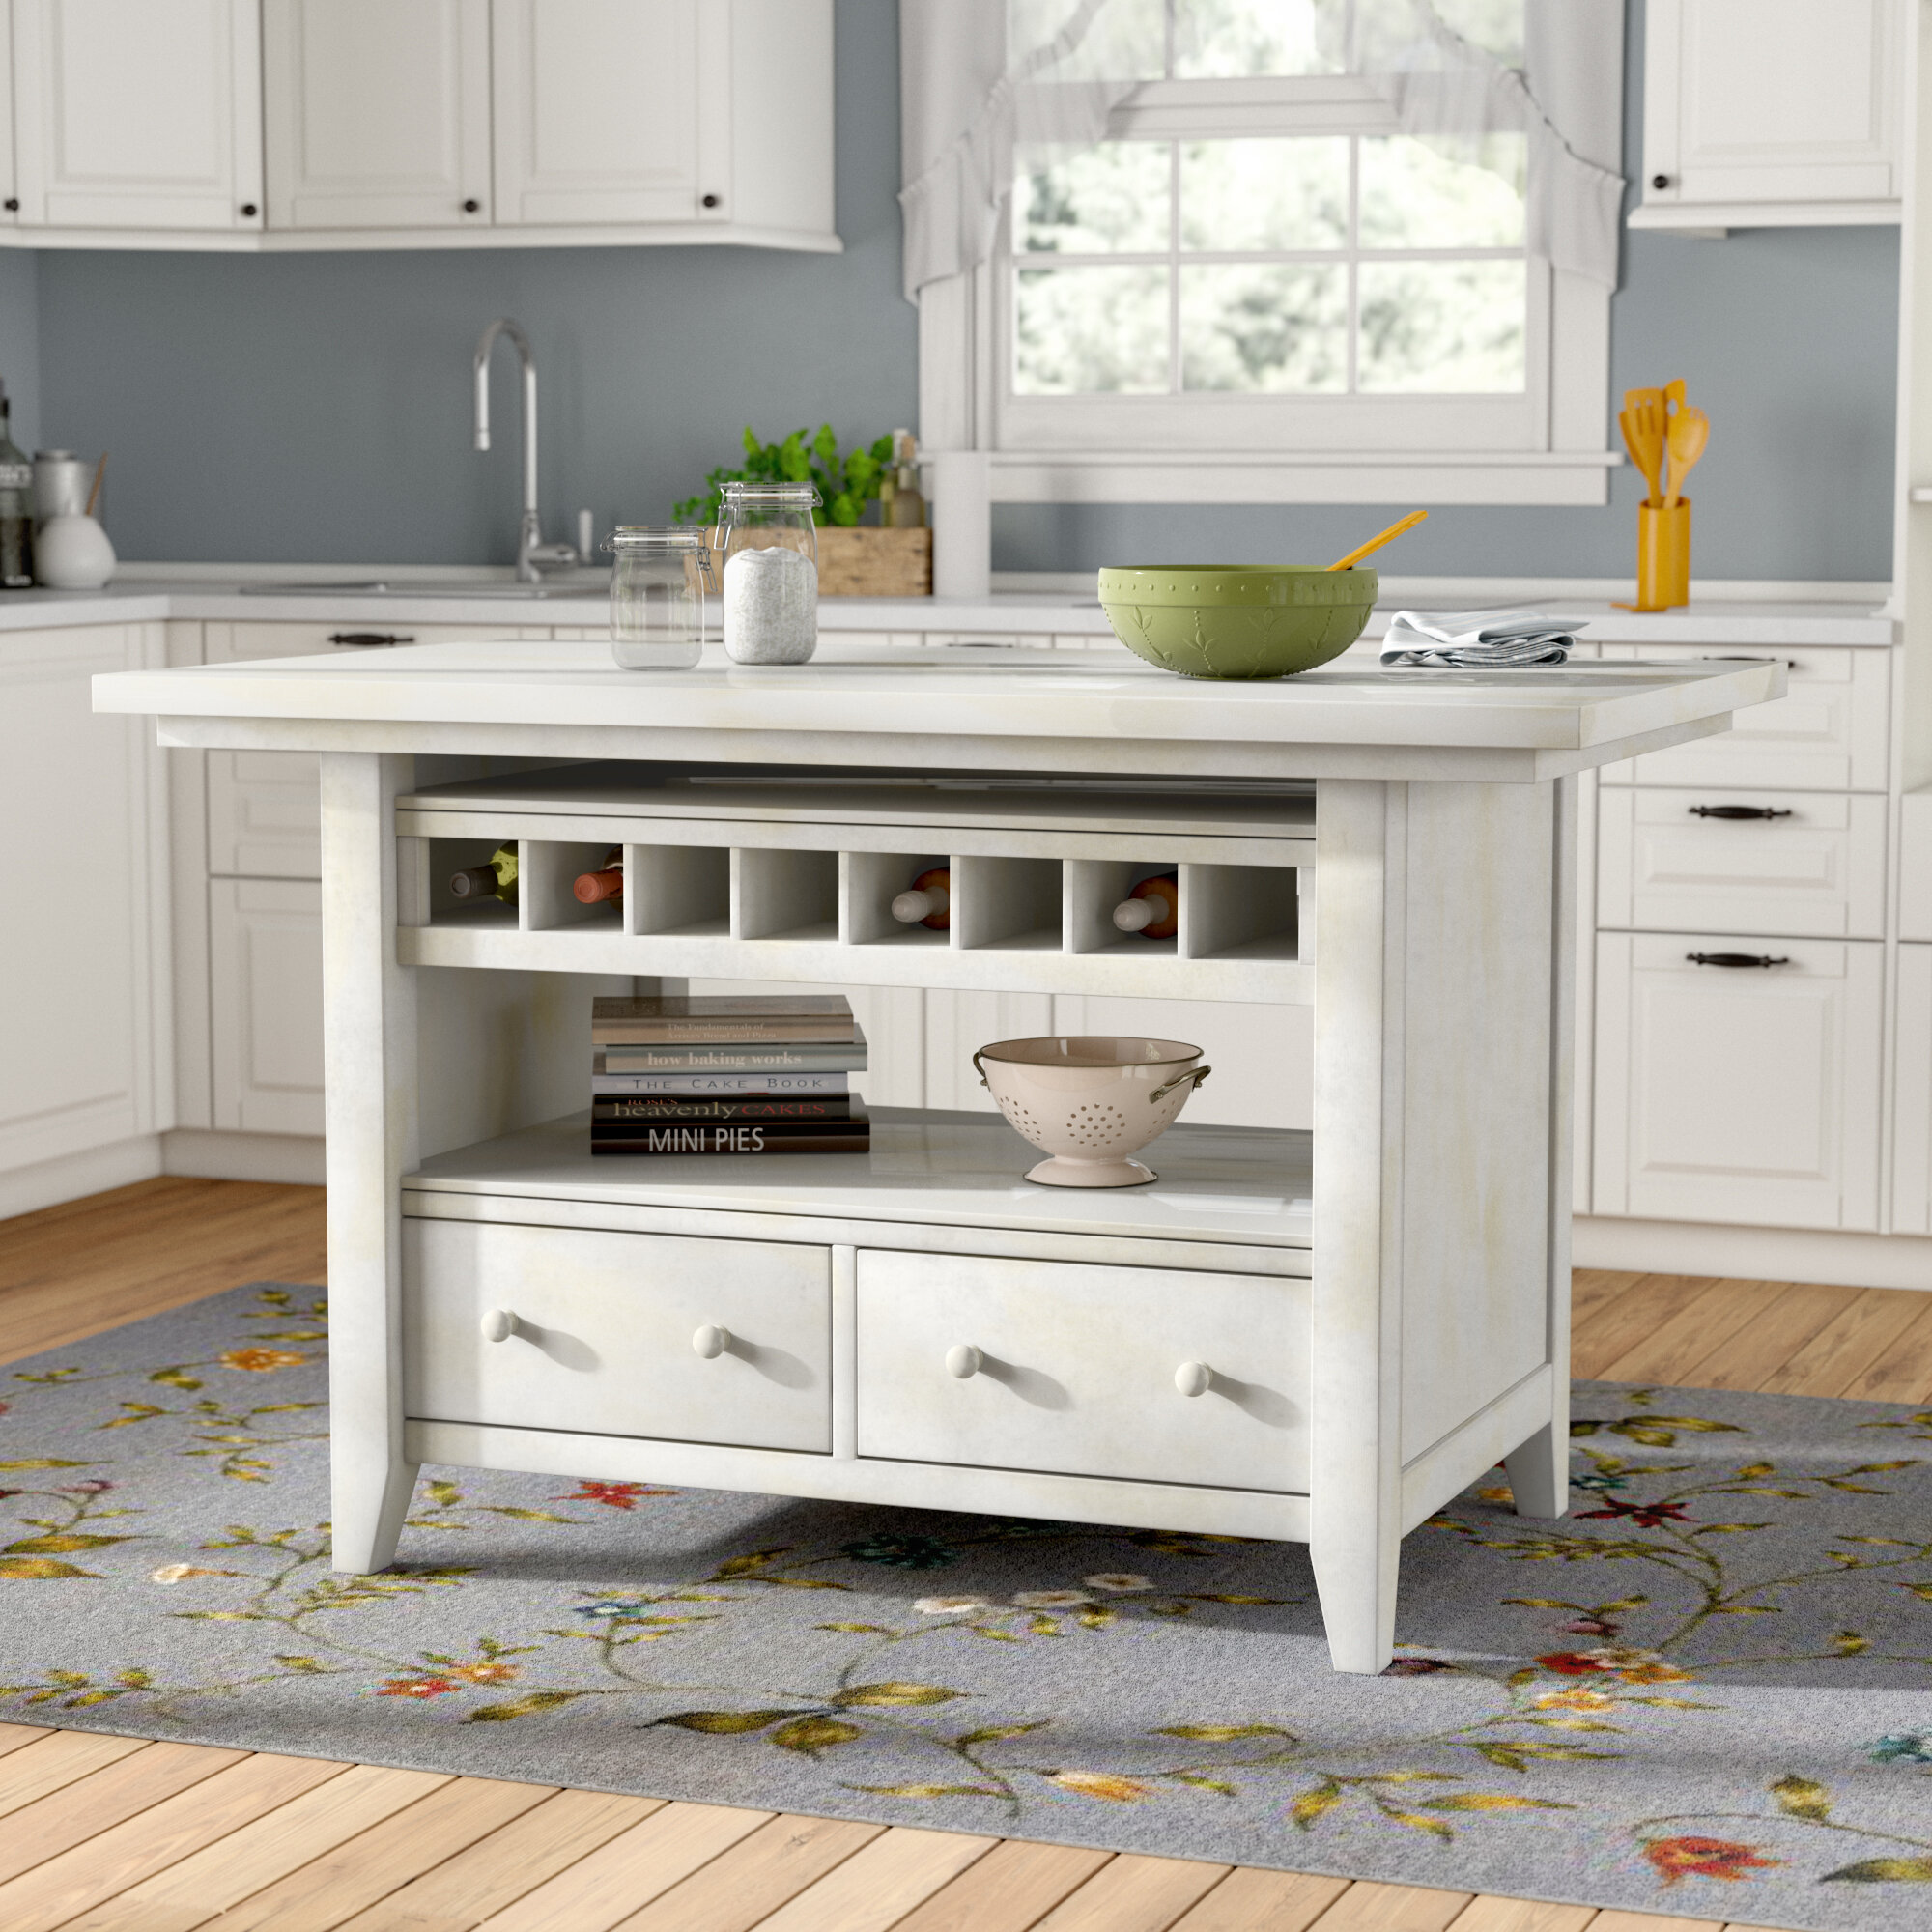 August Grove Carrolltown Wood Kitchen Island & Reviews | Wayfair